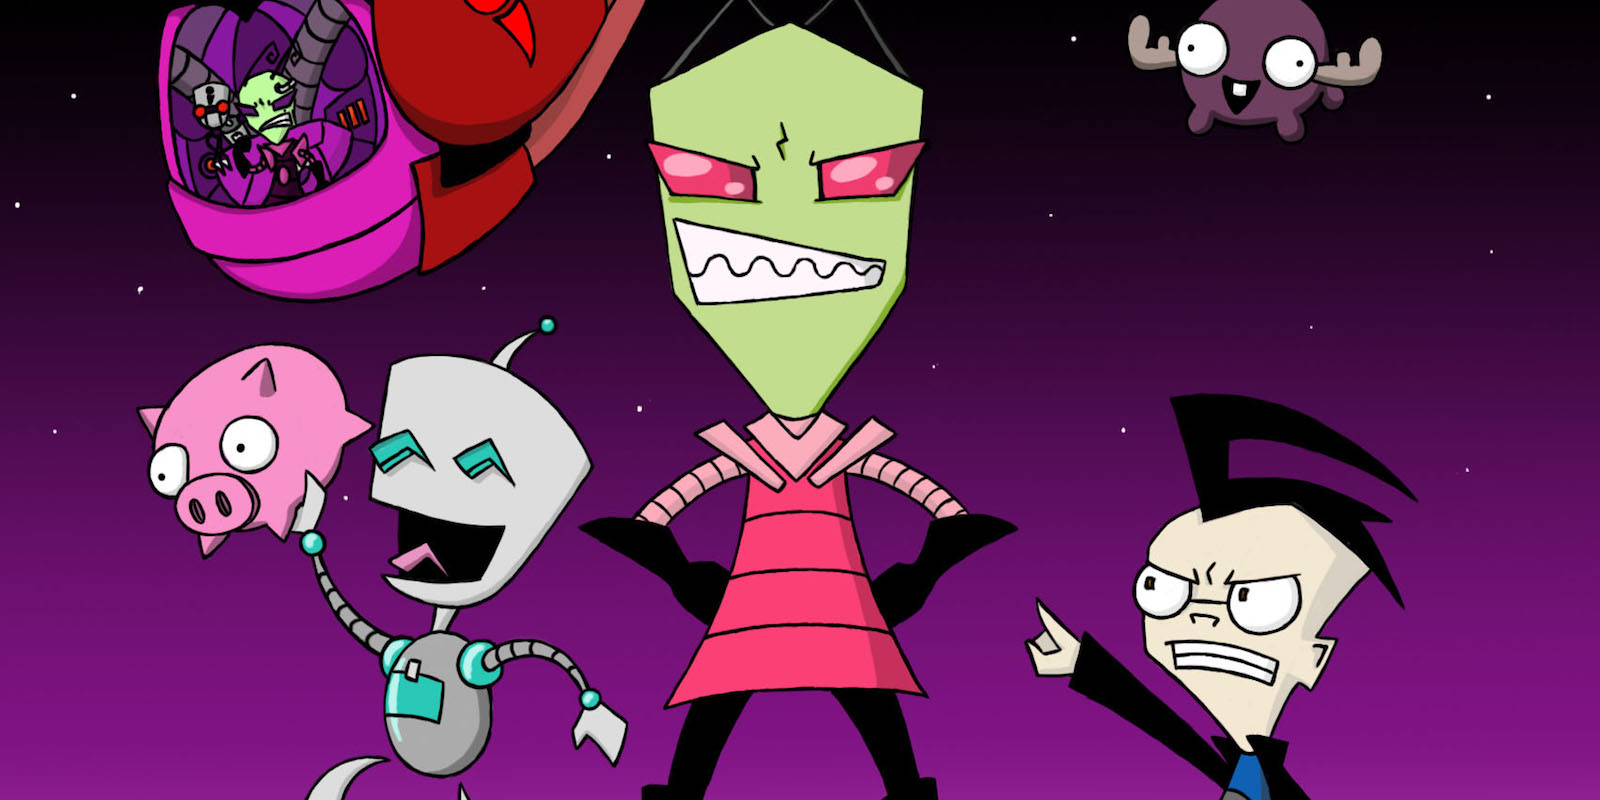 Invader Zim Tv Movie 2017 Nickelodeon additionally Displayimage in addition OriginalFunko further Watch also 90s Nickelodeon Kenan And Kel N4qbS9aGGjaW4. on 90s nickelodeon shows